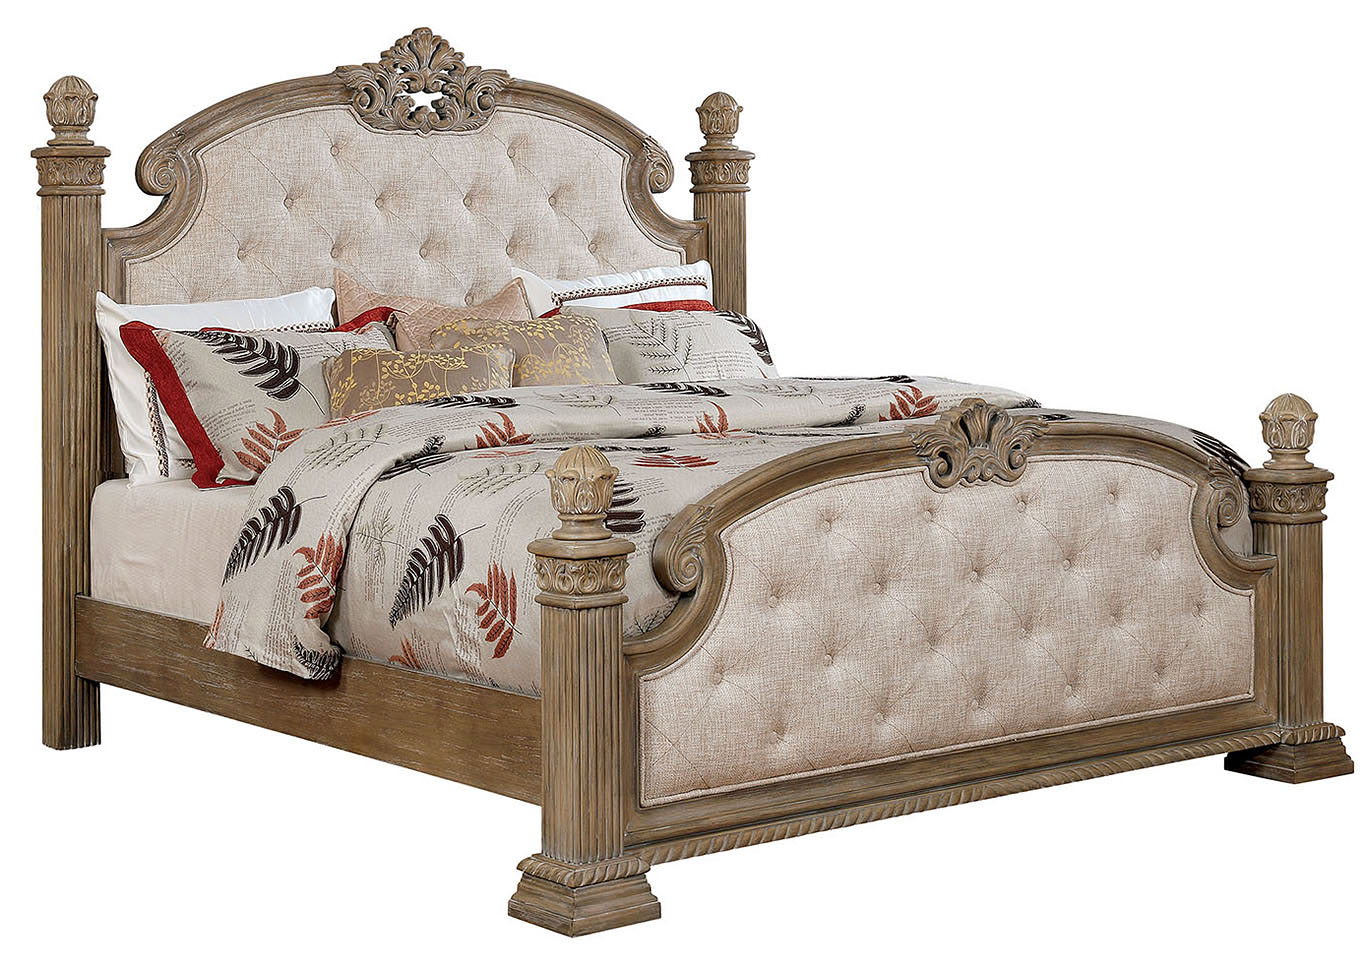 Montgomery Rustic Natural Upholstered Low Poster Eastern King Bed w/Dresser and Mirror,Furniture of America